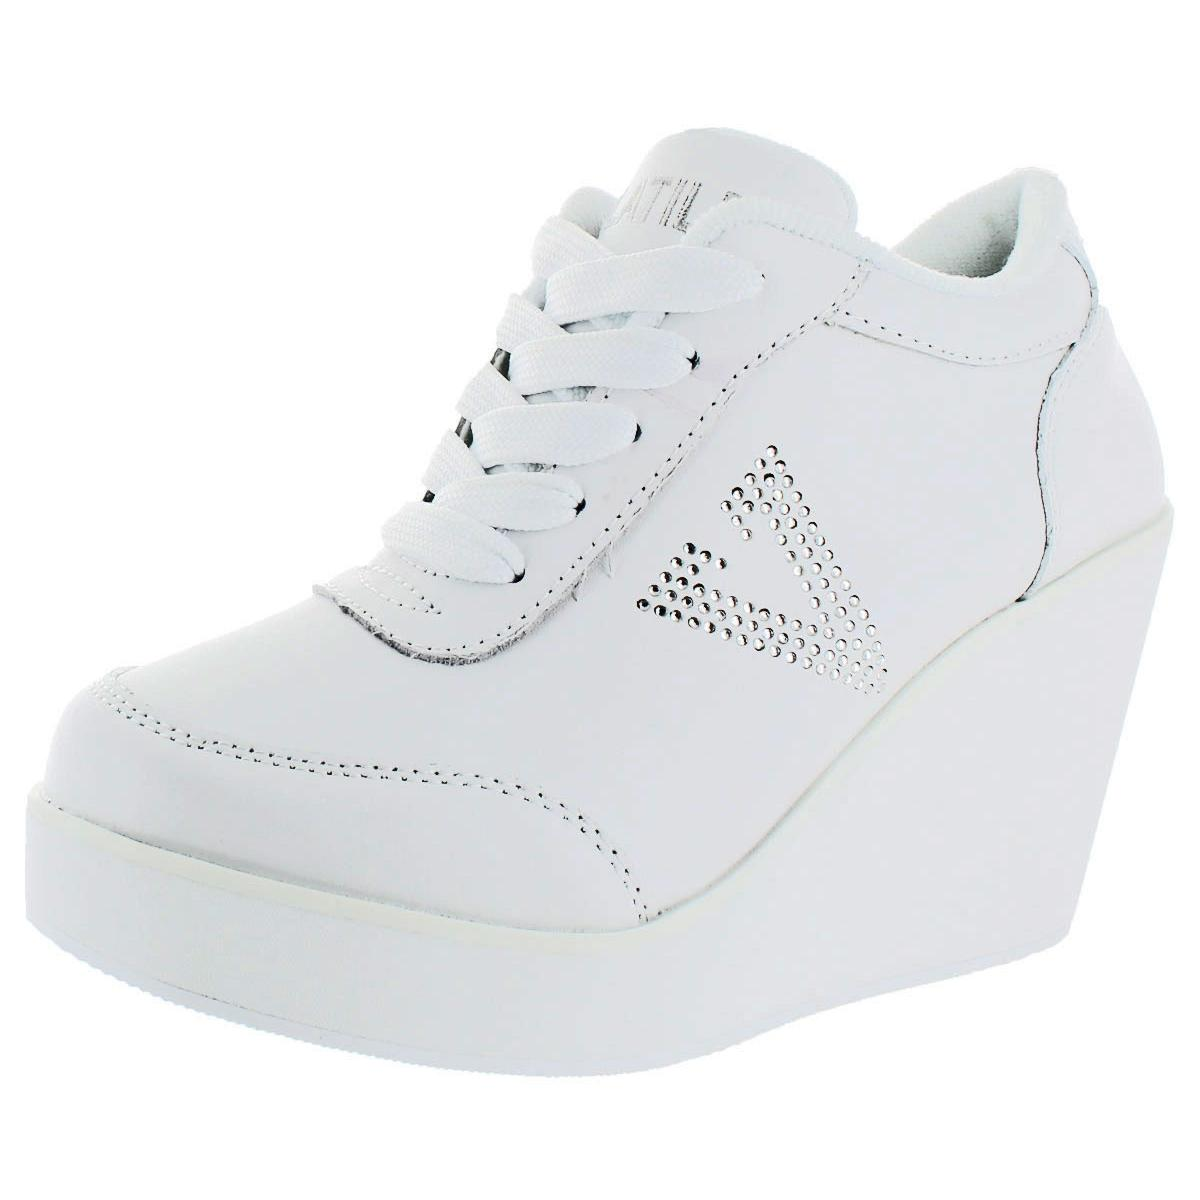 VOLATILE Cash Women US 8 White Wedge Heel Pre Owned 1578  7827325d27